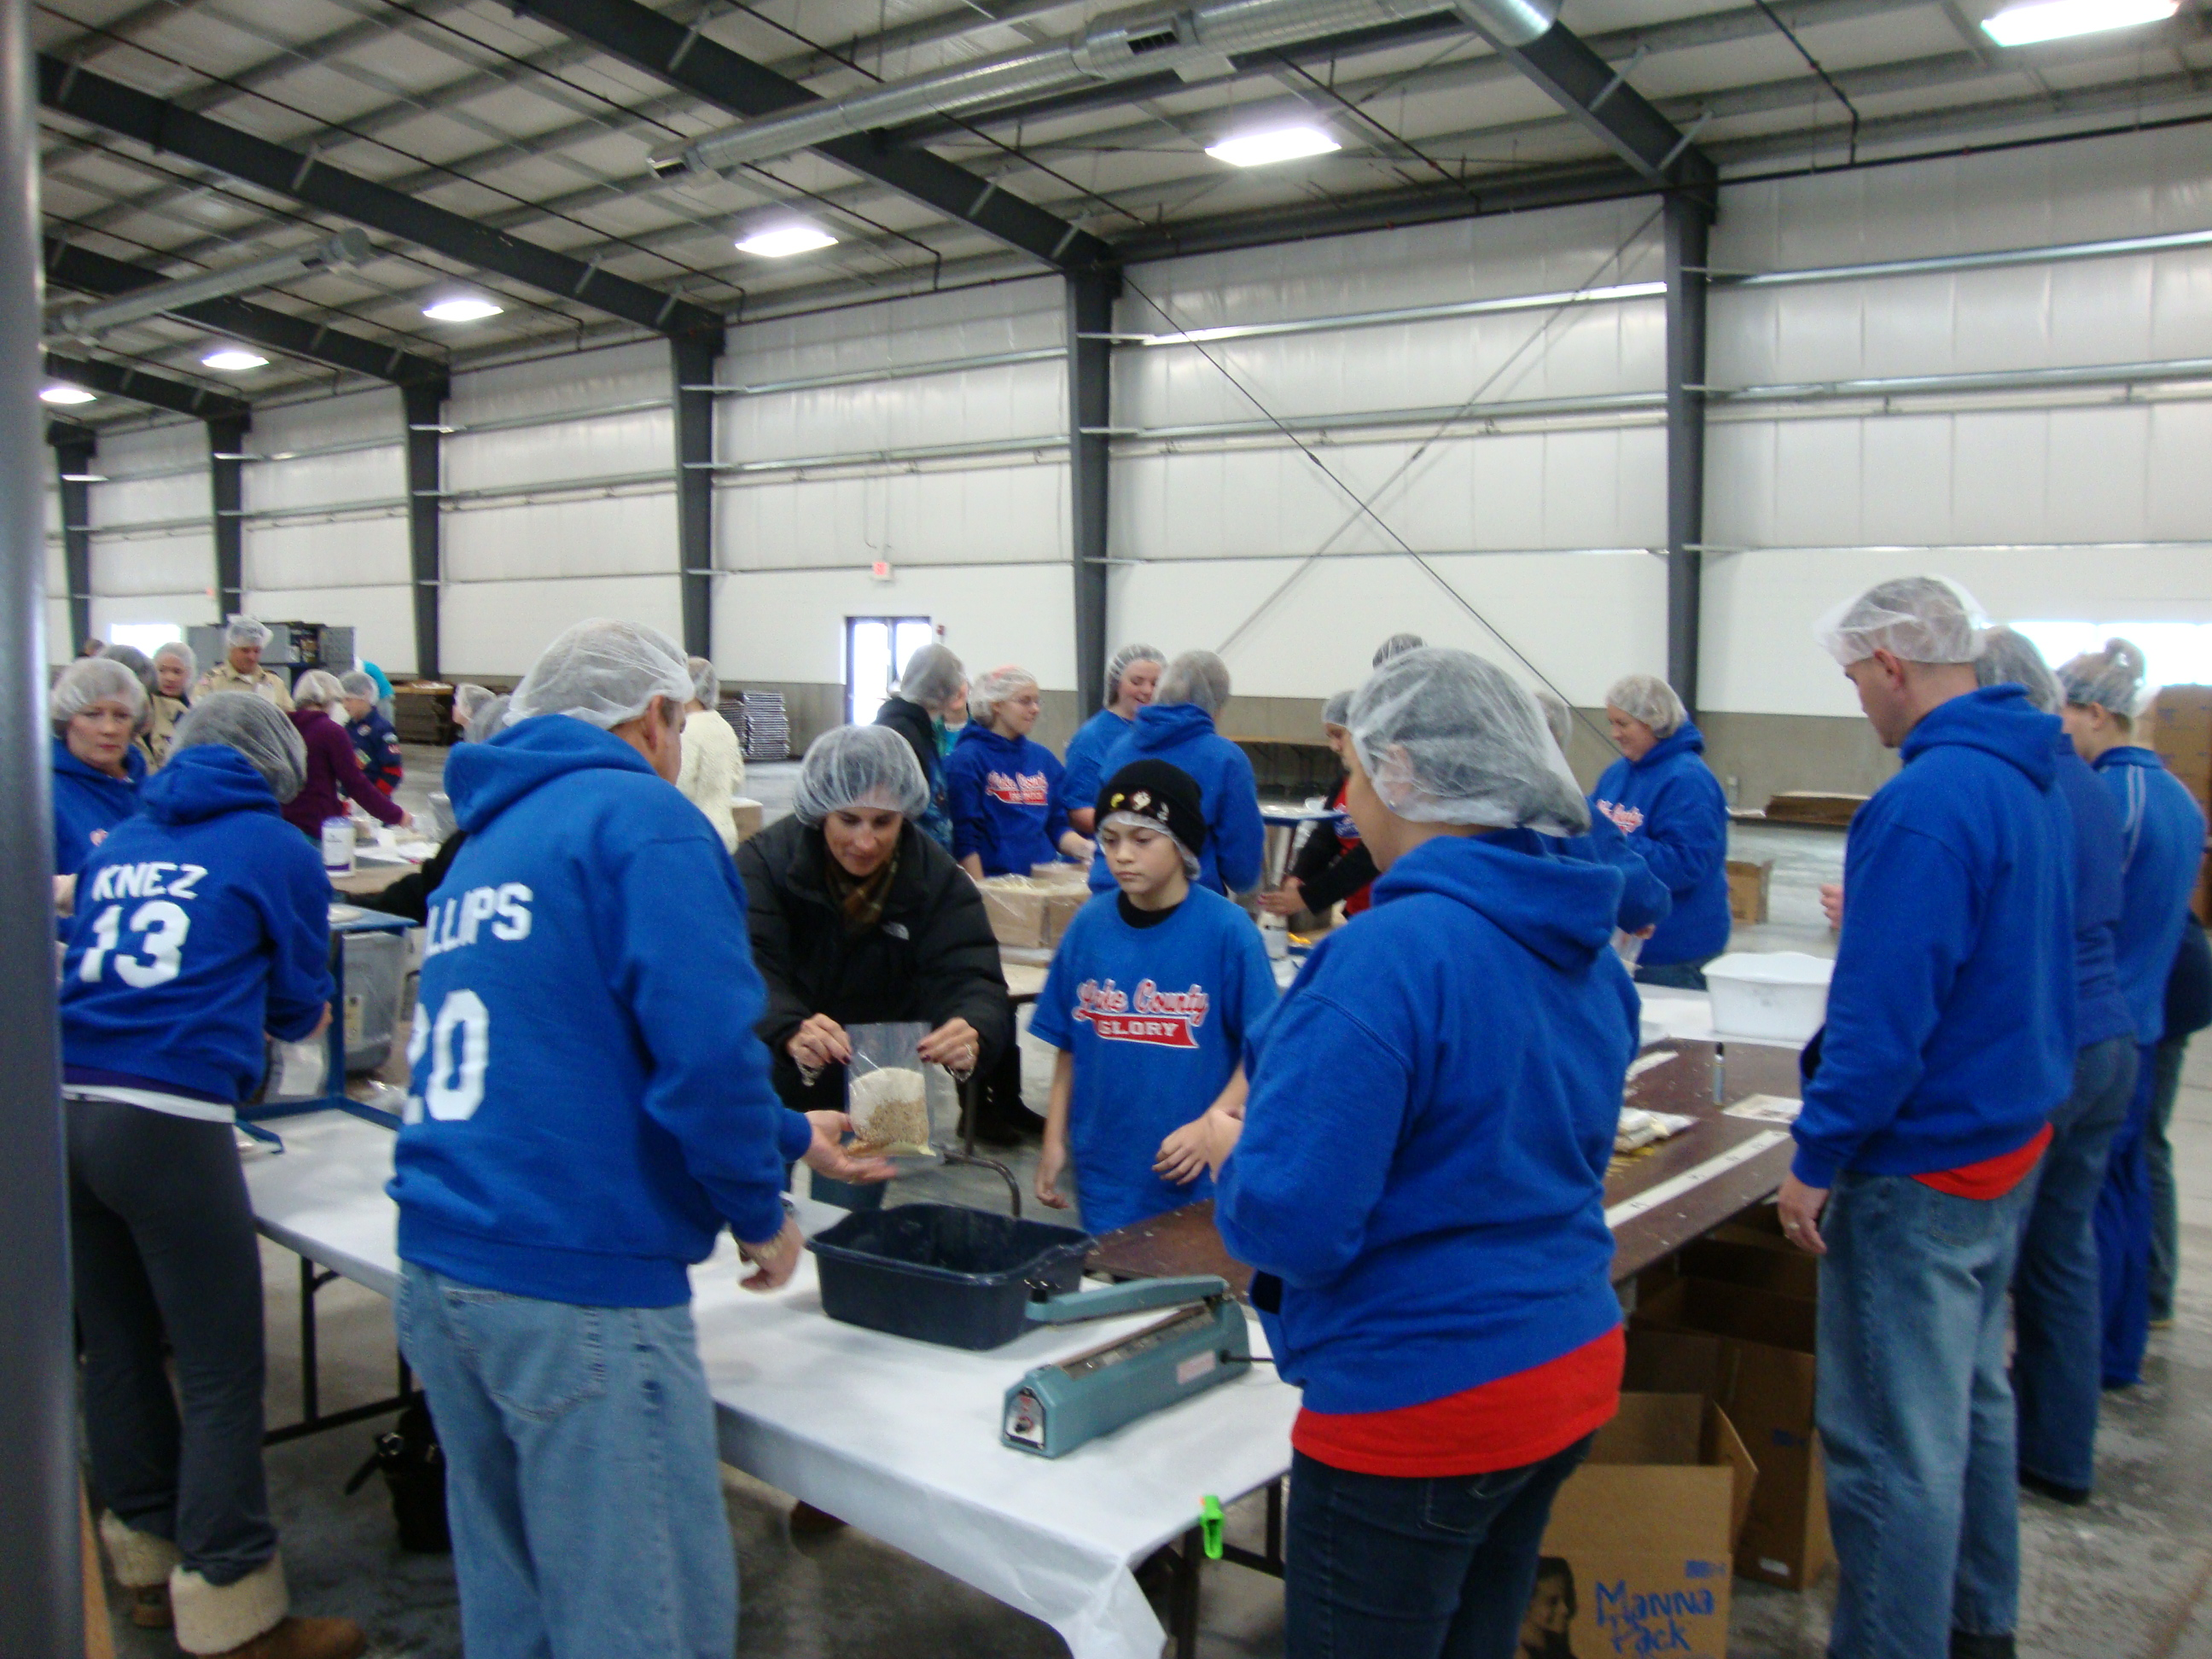 Glory at Feed My Starving Children